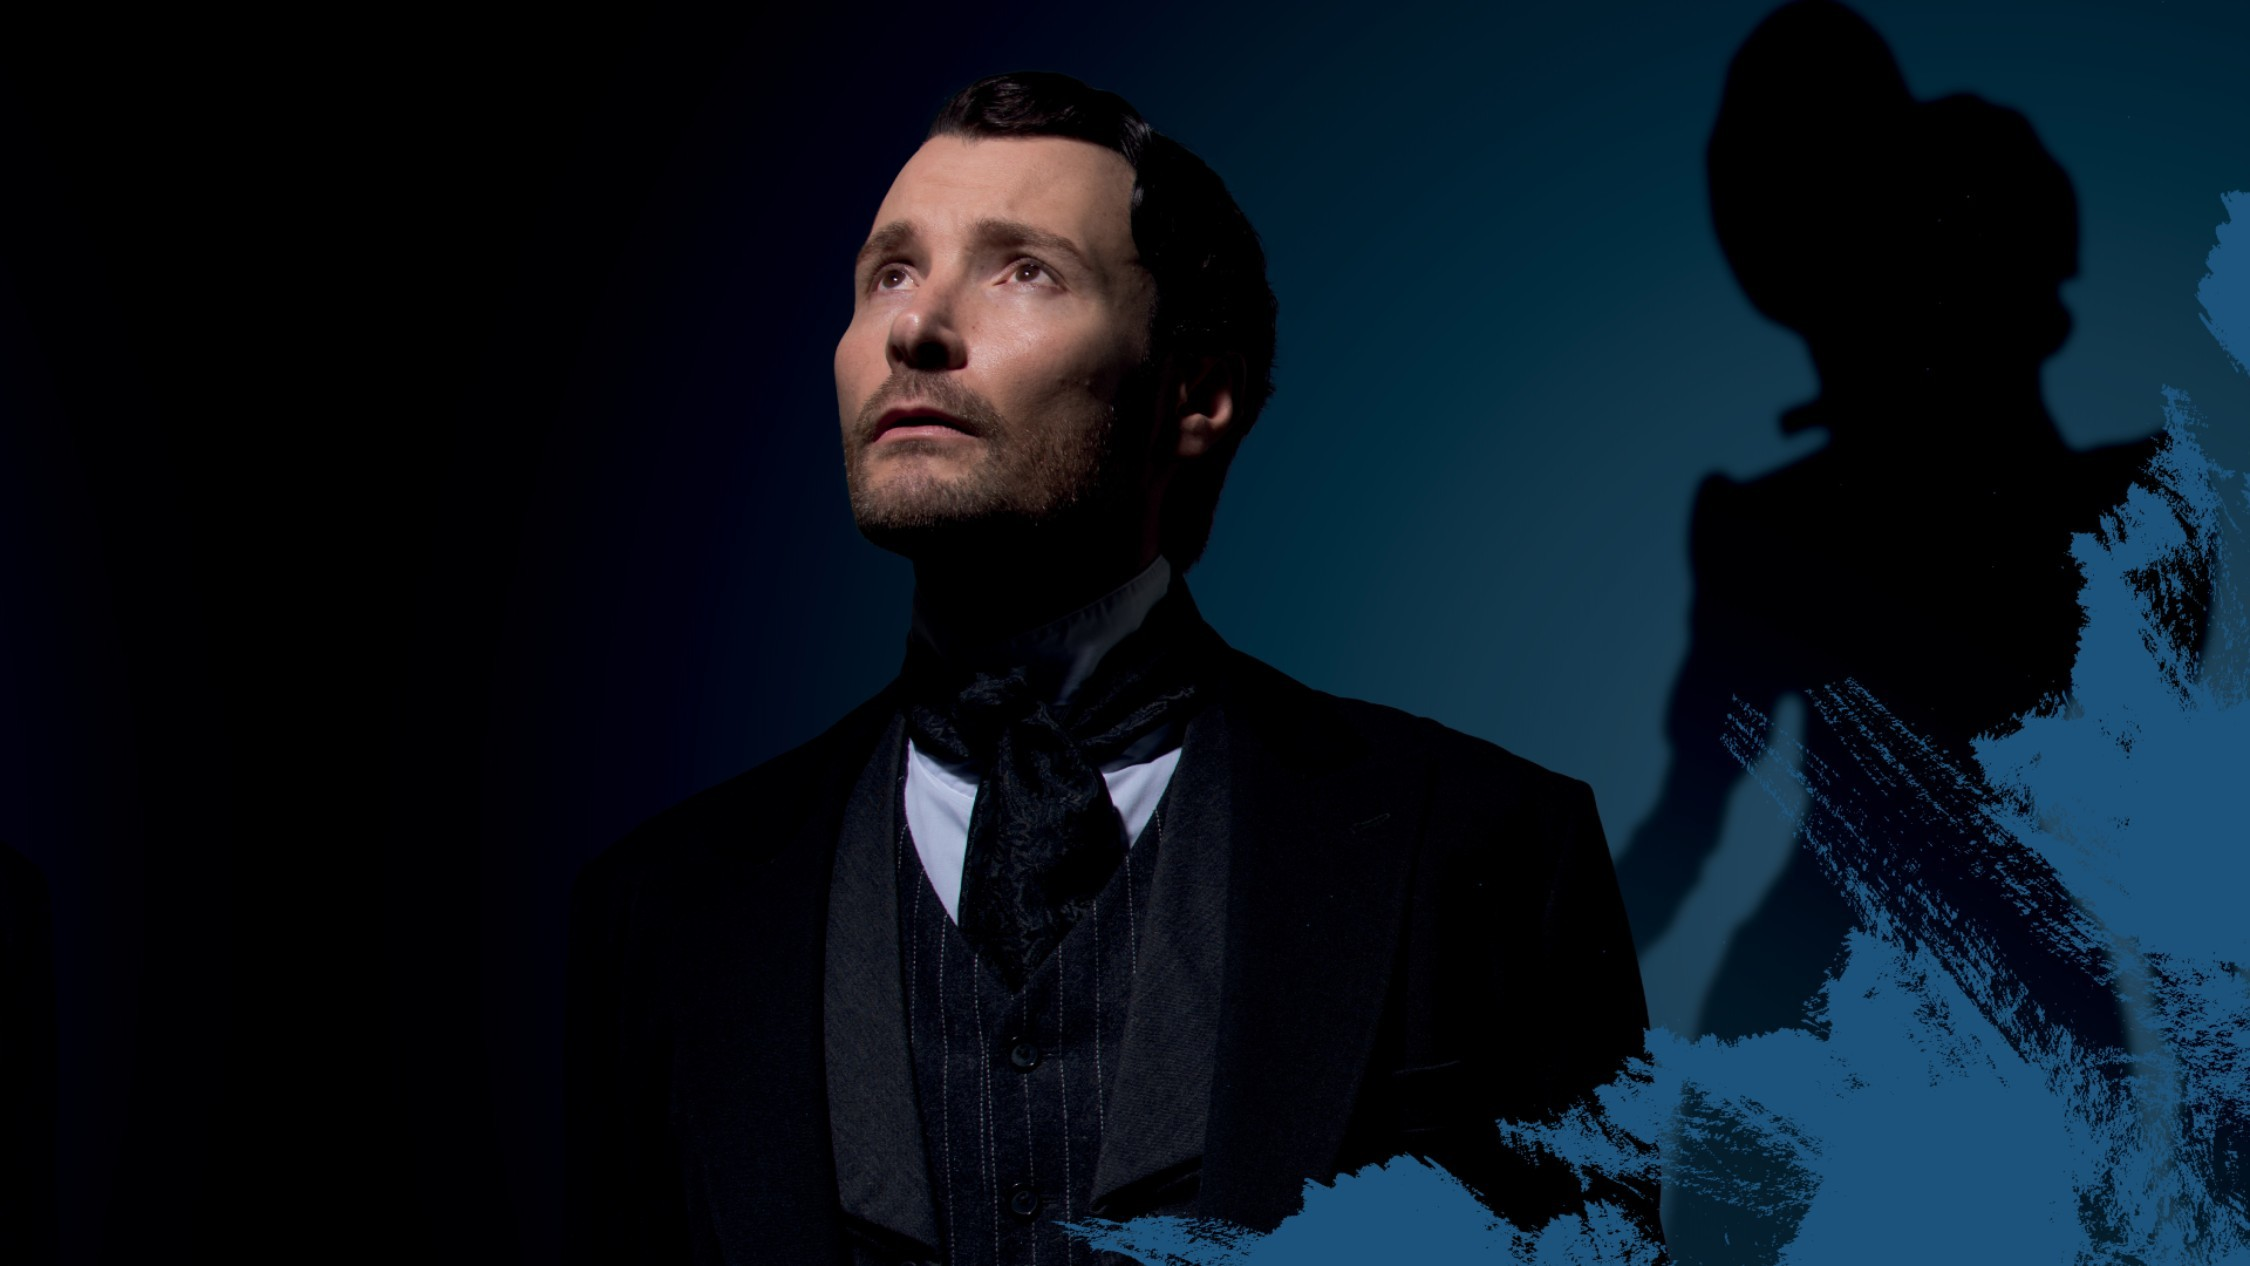 A man in a black suit and tie, with the ghostly figure of a woman behind him